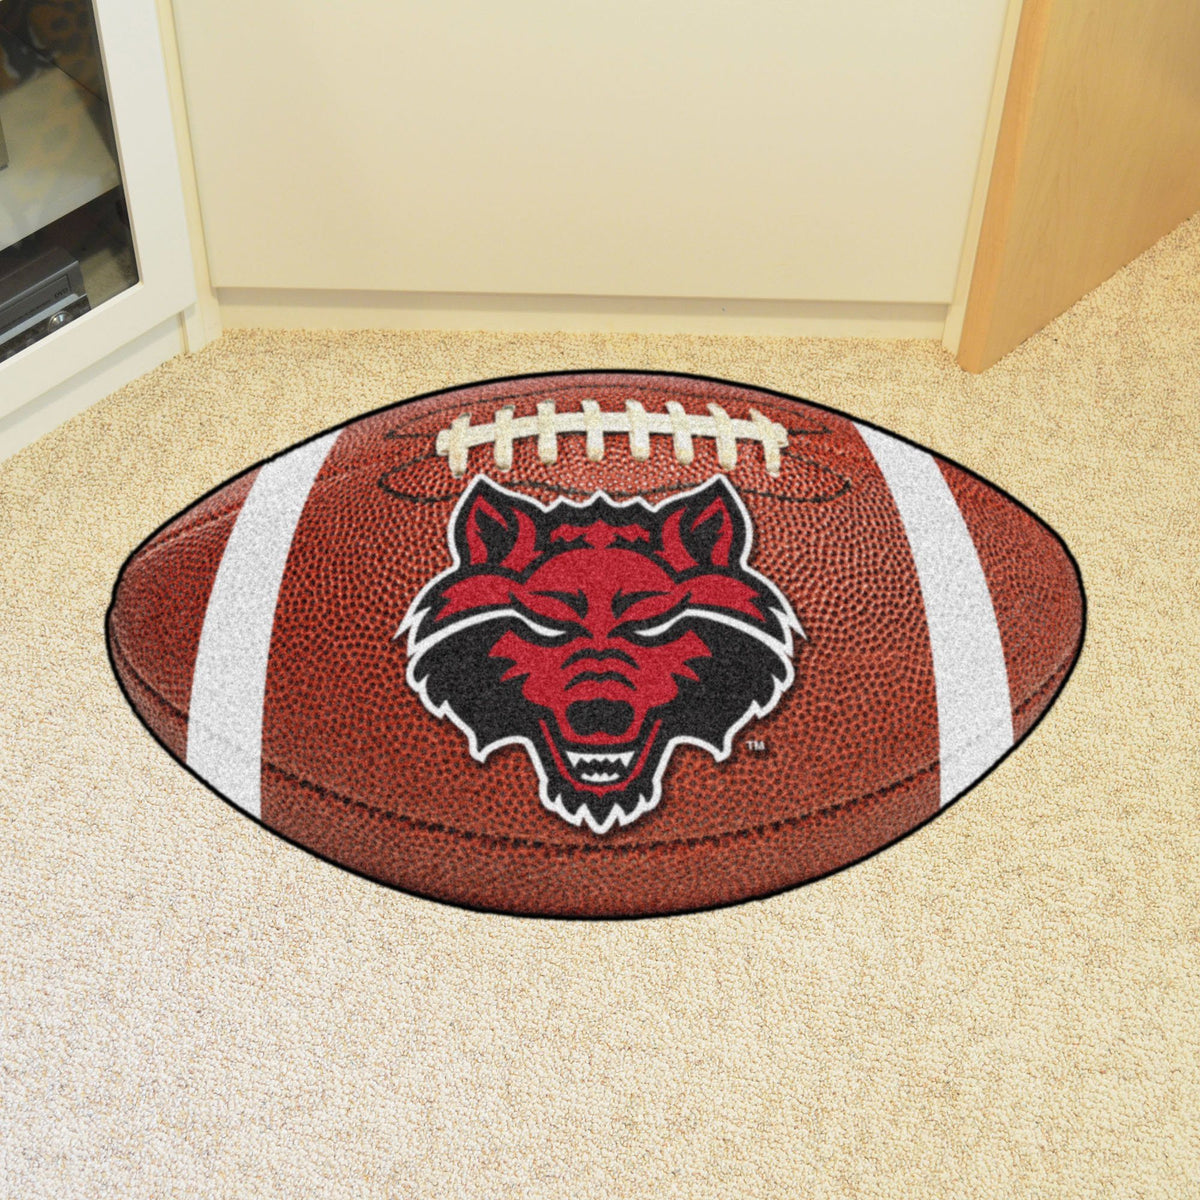 Collegiate - Football Mat: A - K Collegiate Mats, Rectangular Mats, Football Mat, Collegiate, Home Fan Mats Arkansas State